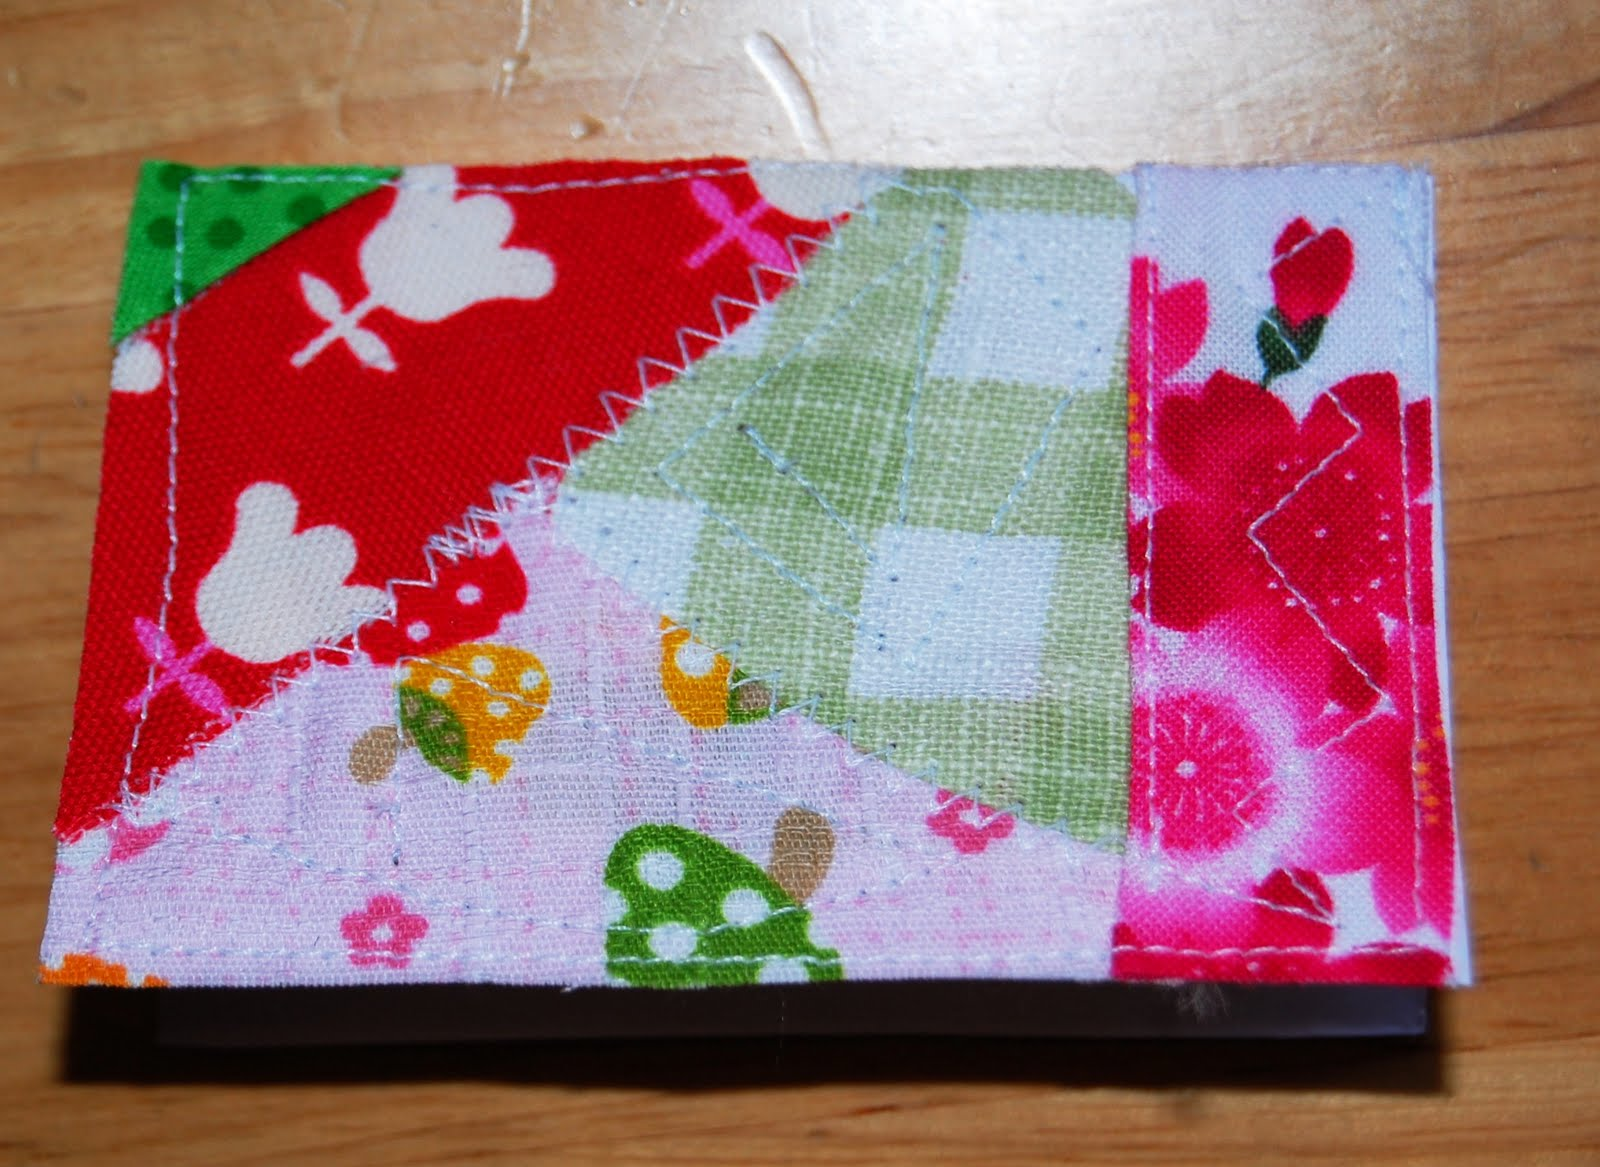 Mybotang fabric scrap series cards - Just Match This And That And Sew I Leave The Edges Raw But You Can Glue On Paper Borders That Would Stop The Edges From Fraying